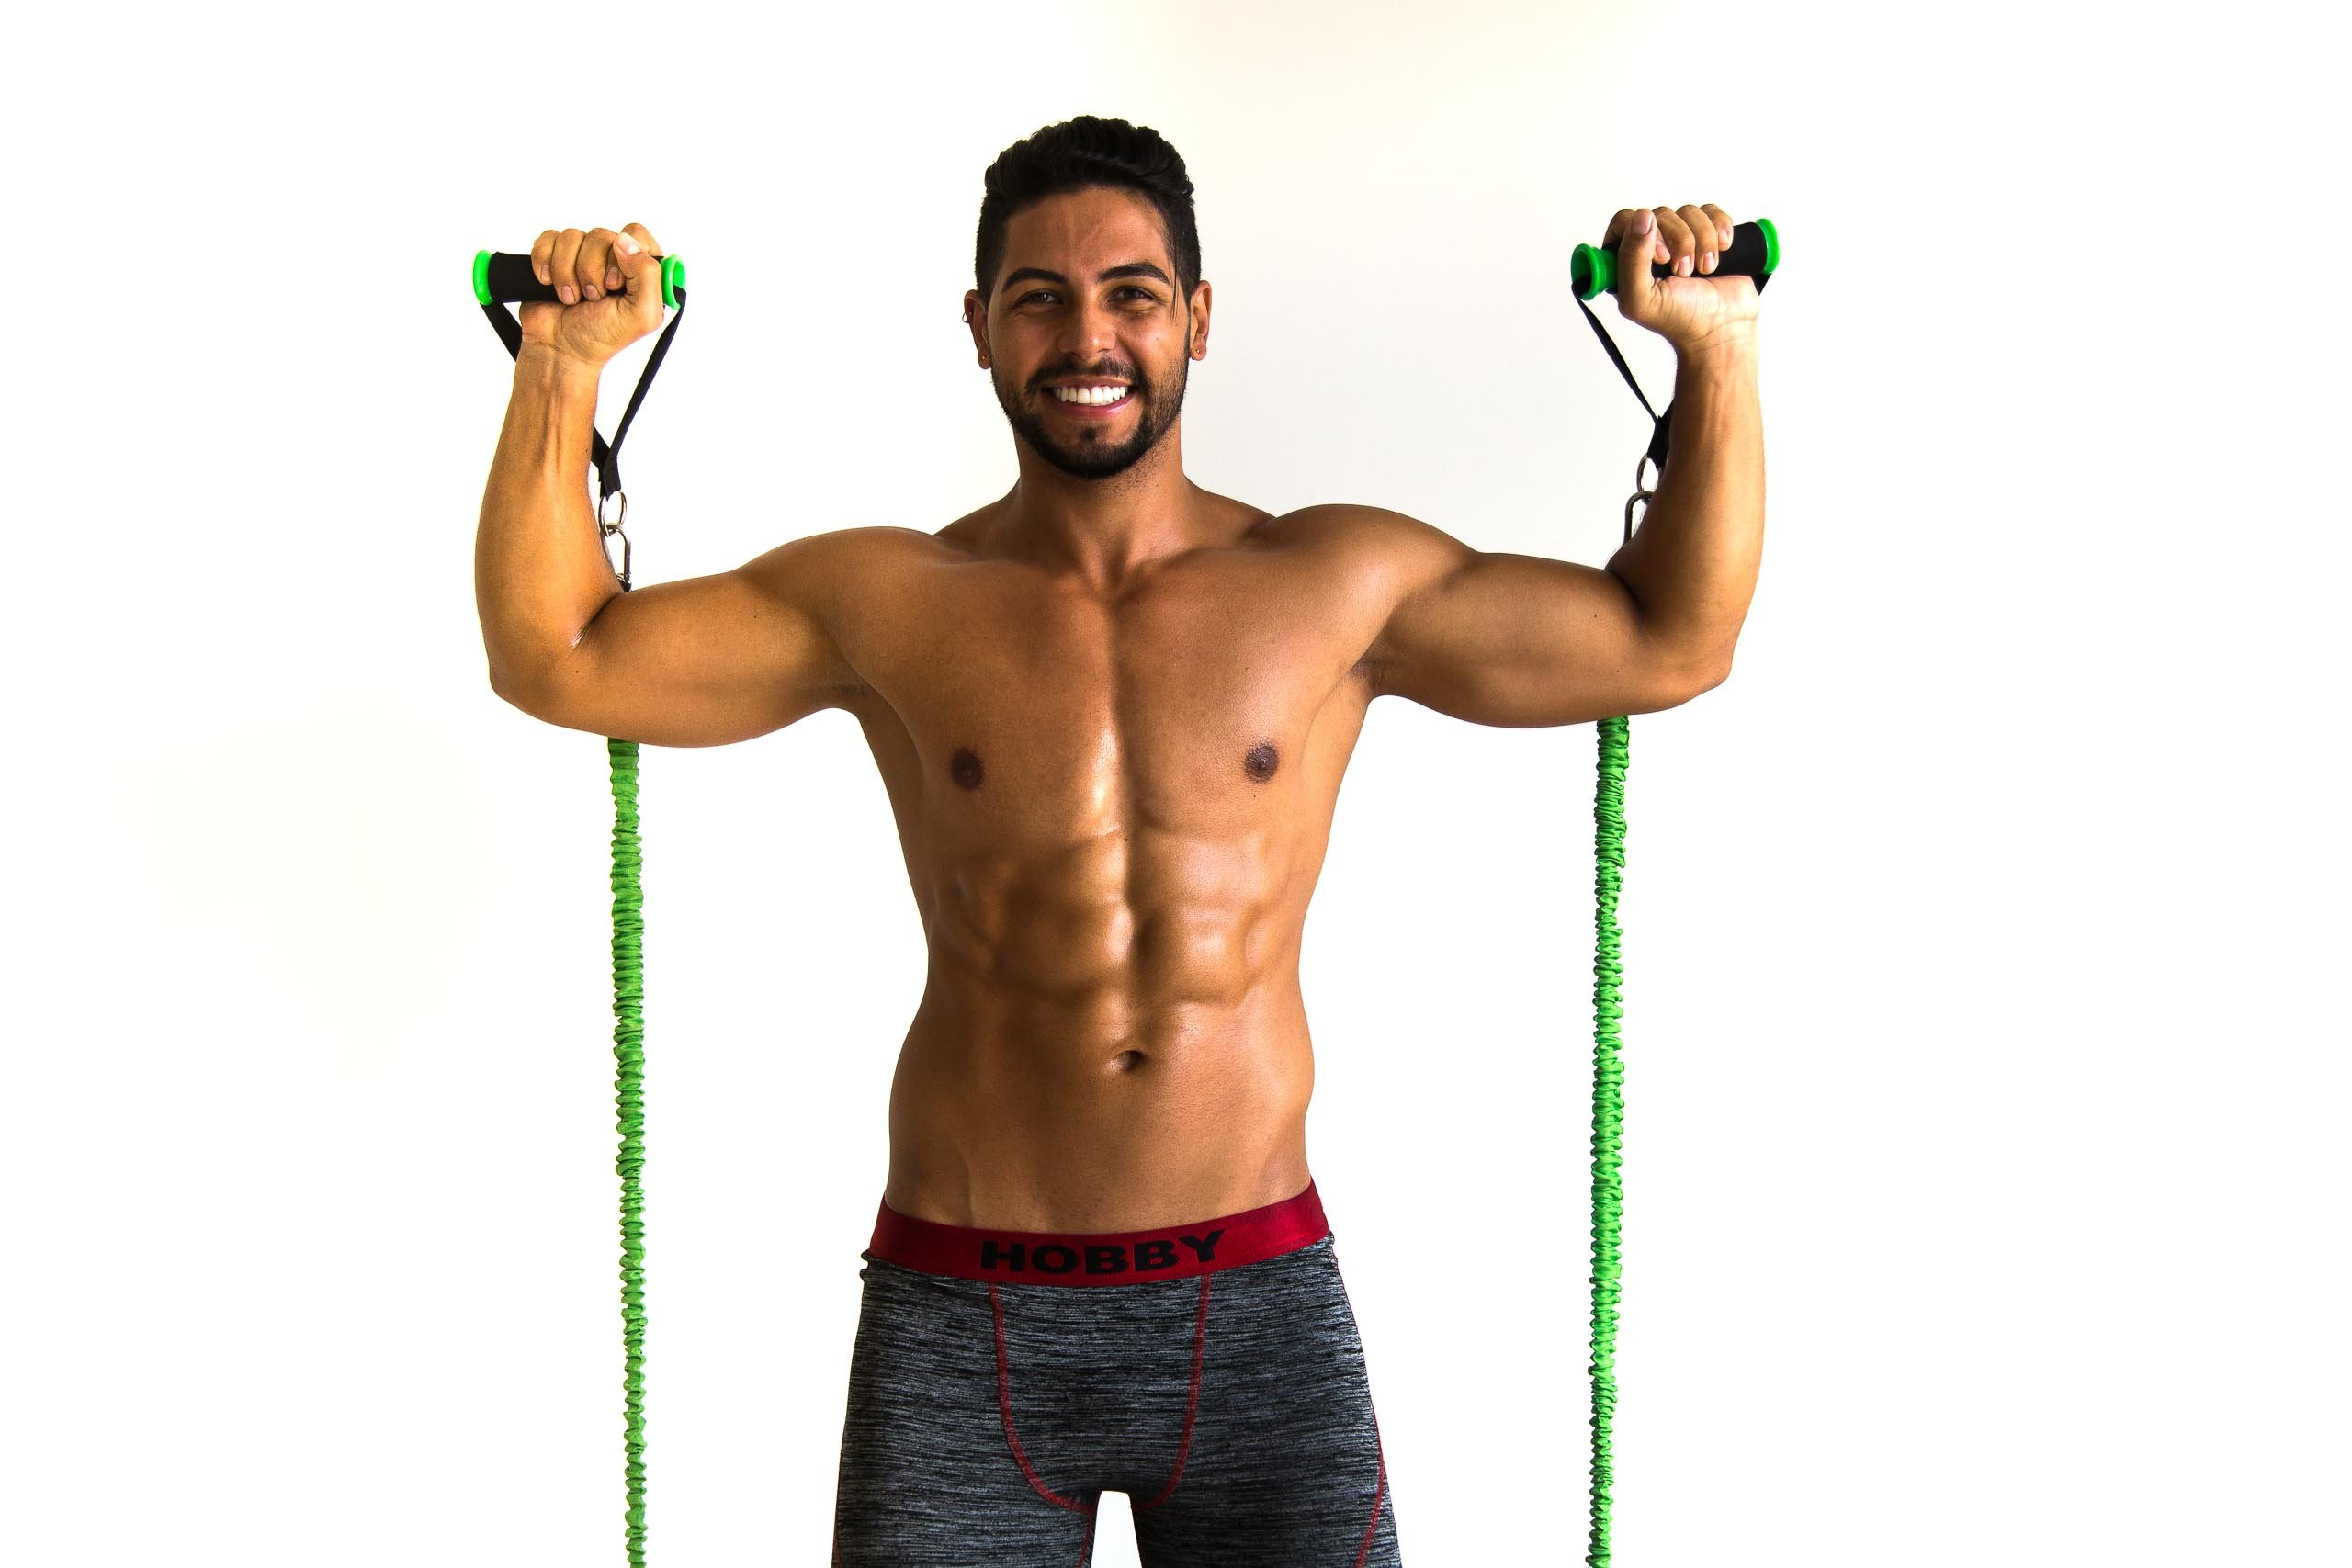 BodyBoss Home Gym 2.0 - Full Portable Gym Home Workout Package, Includes a Set of Resistance Bands (2) - Collapsible Resistance Bar, Handles + More- Full Body Workouts for Home, Travel or Outside by BodyBoss (Image #4)